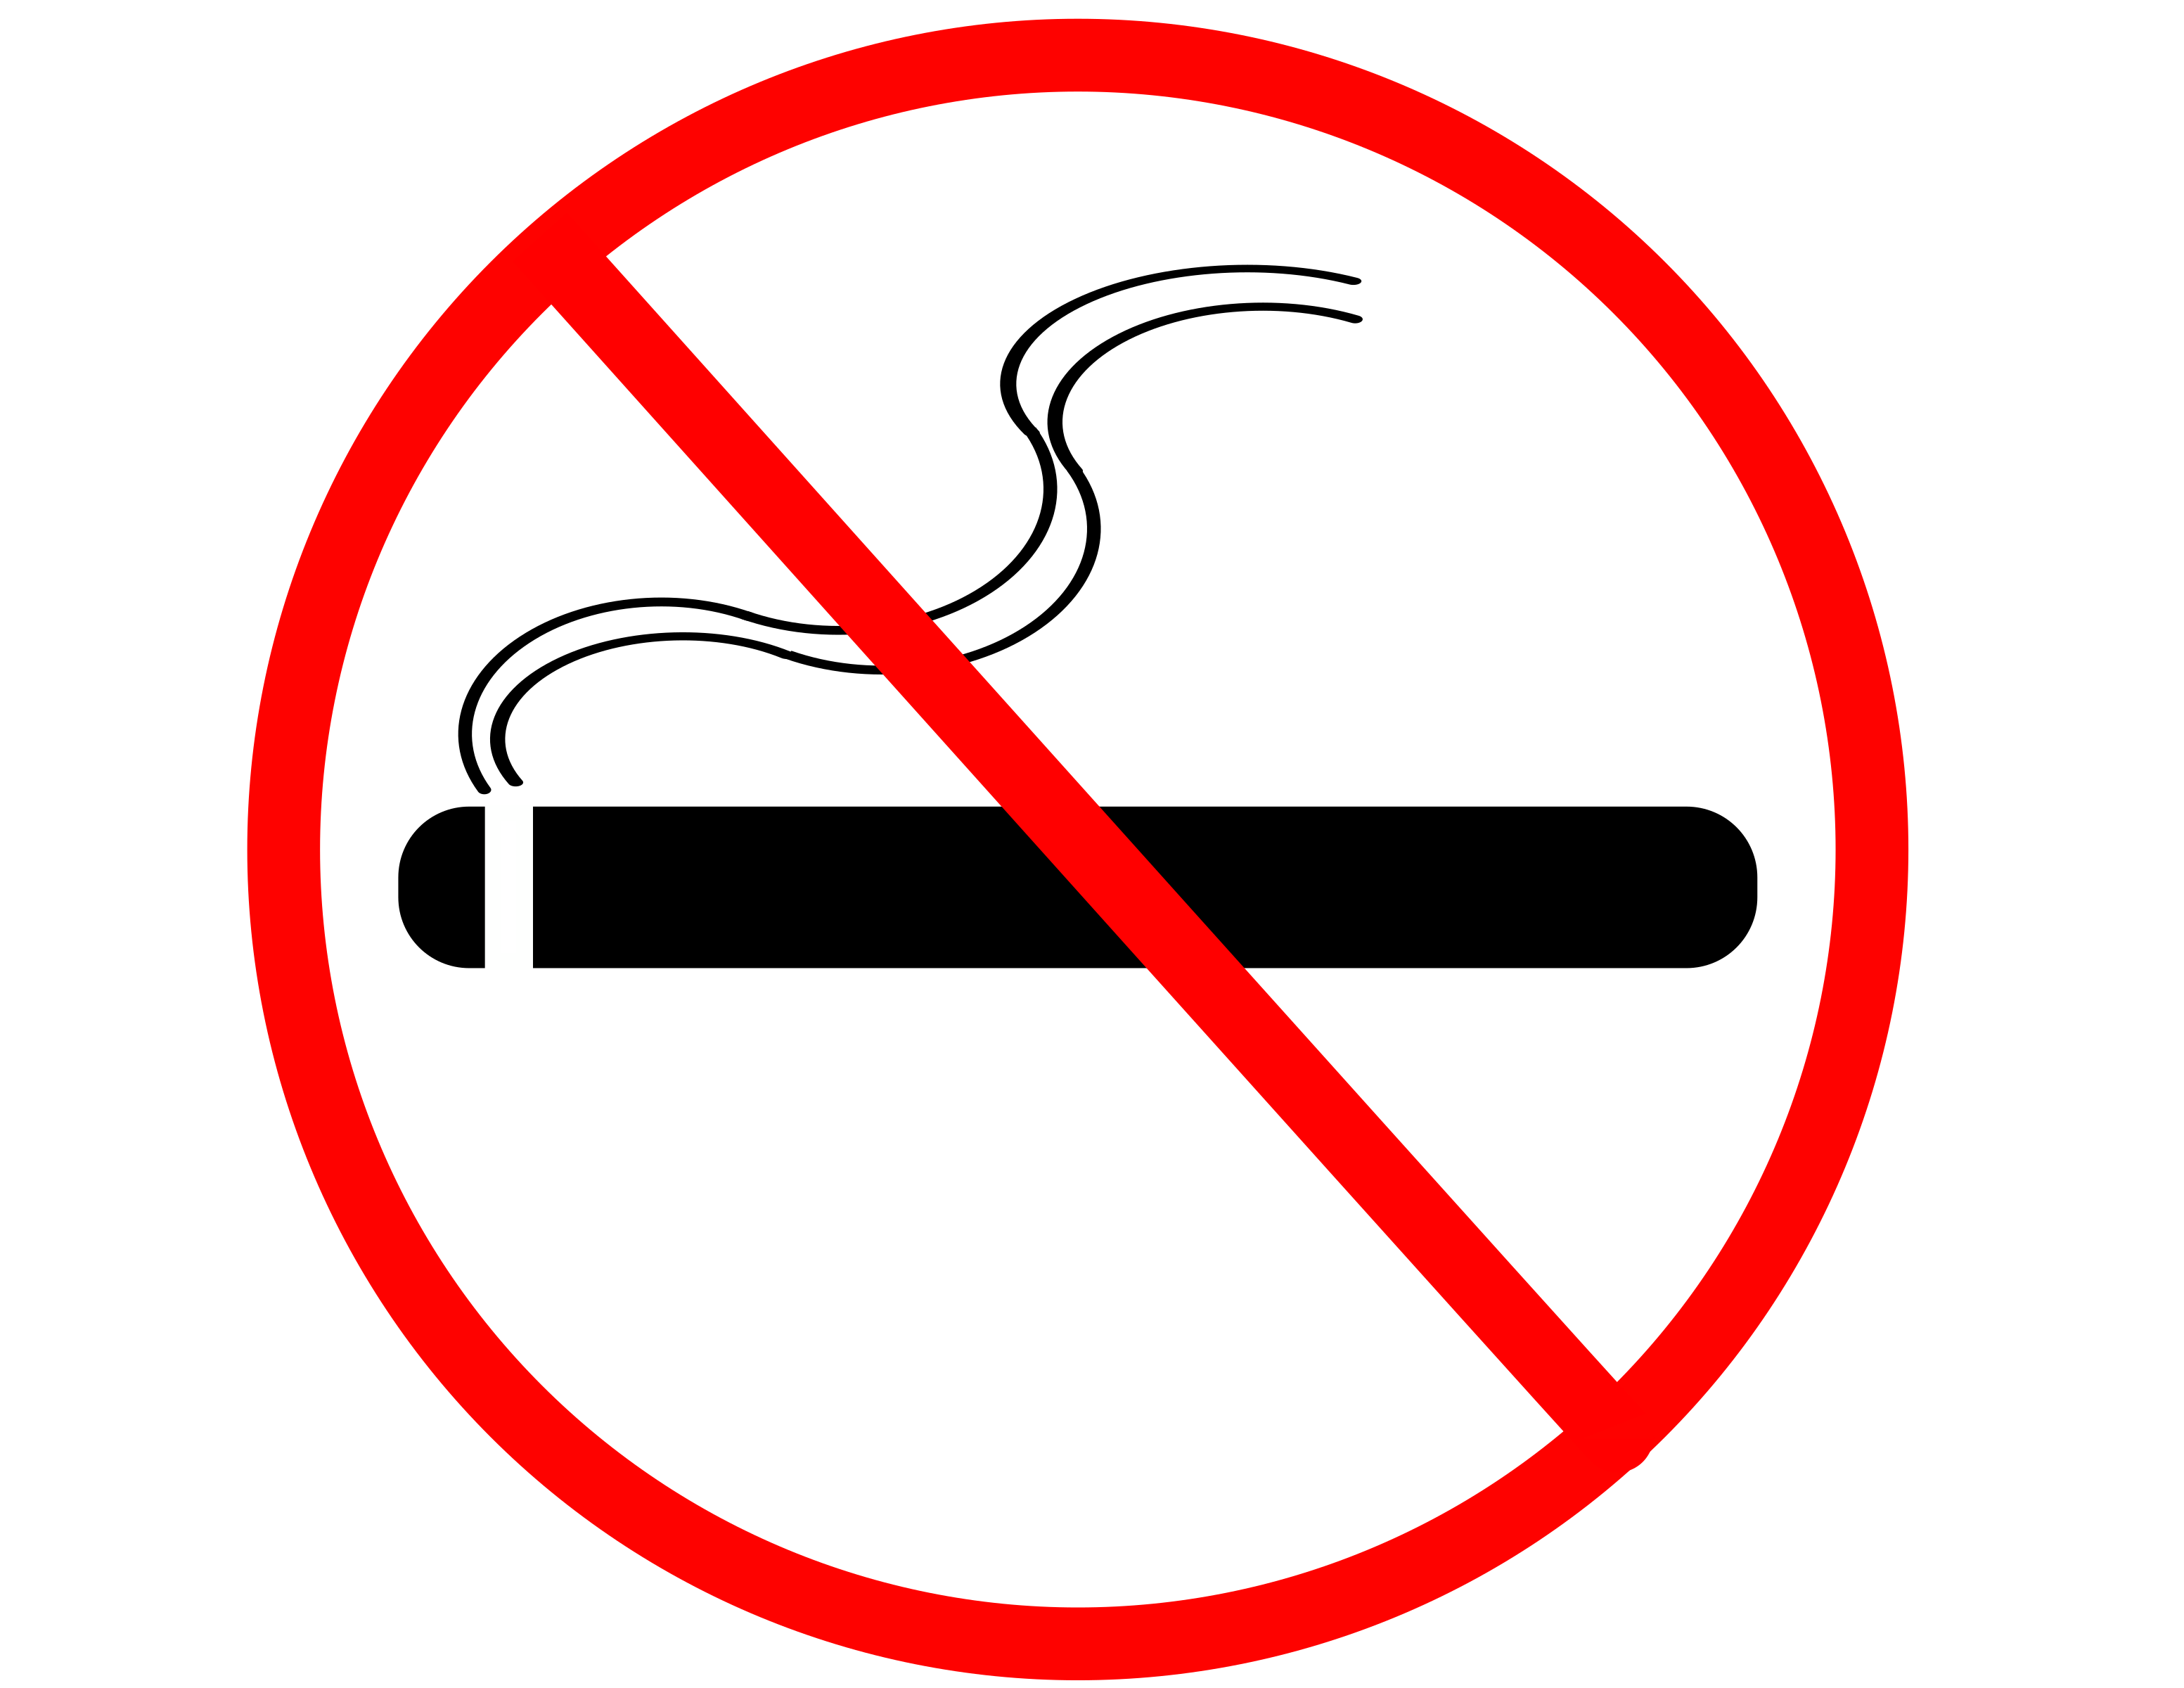 No Smoking clipart please No smoking No Clipart